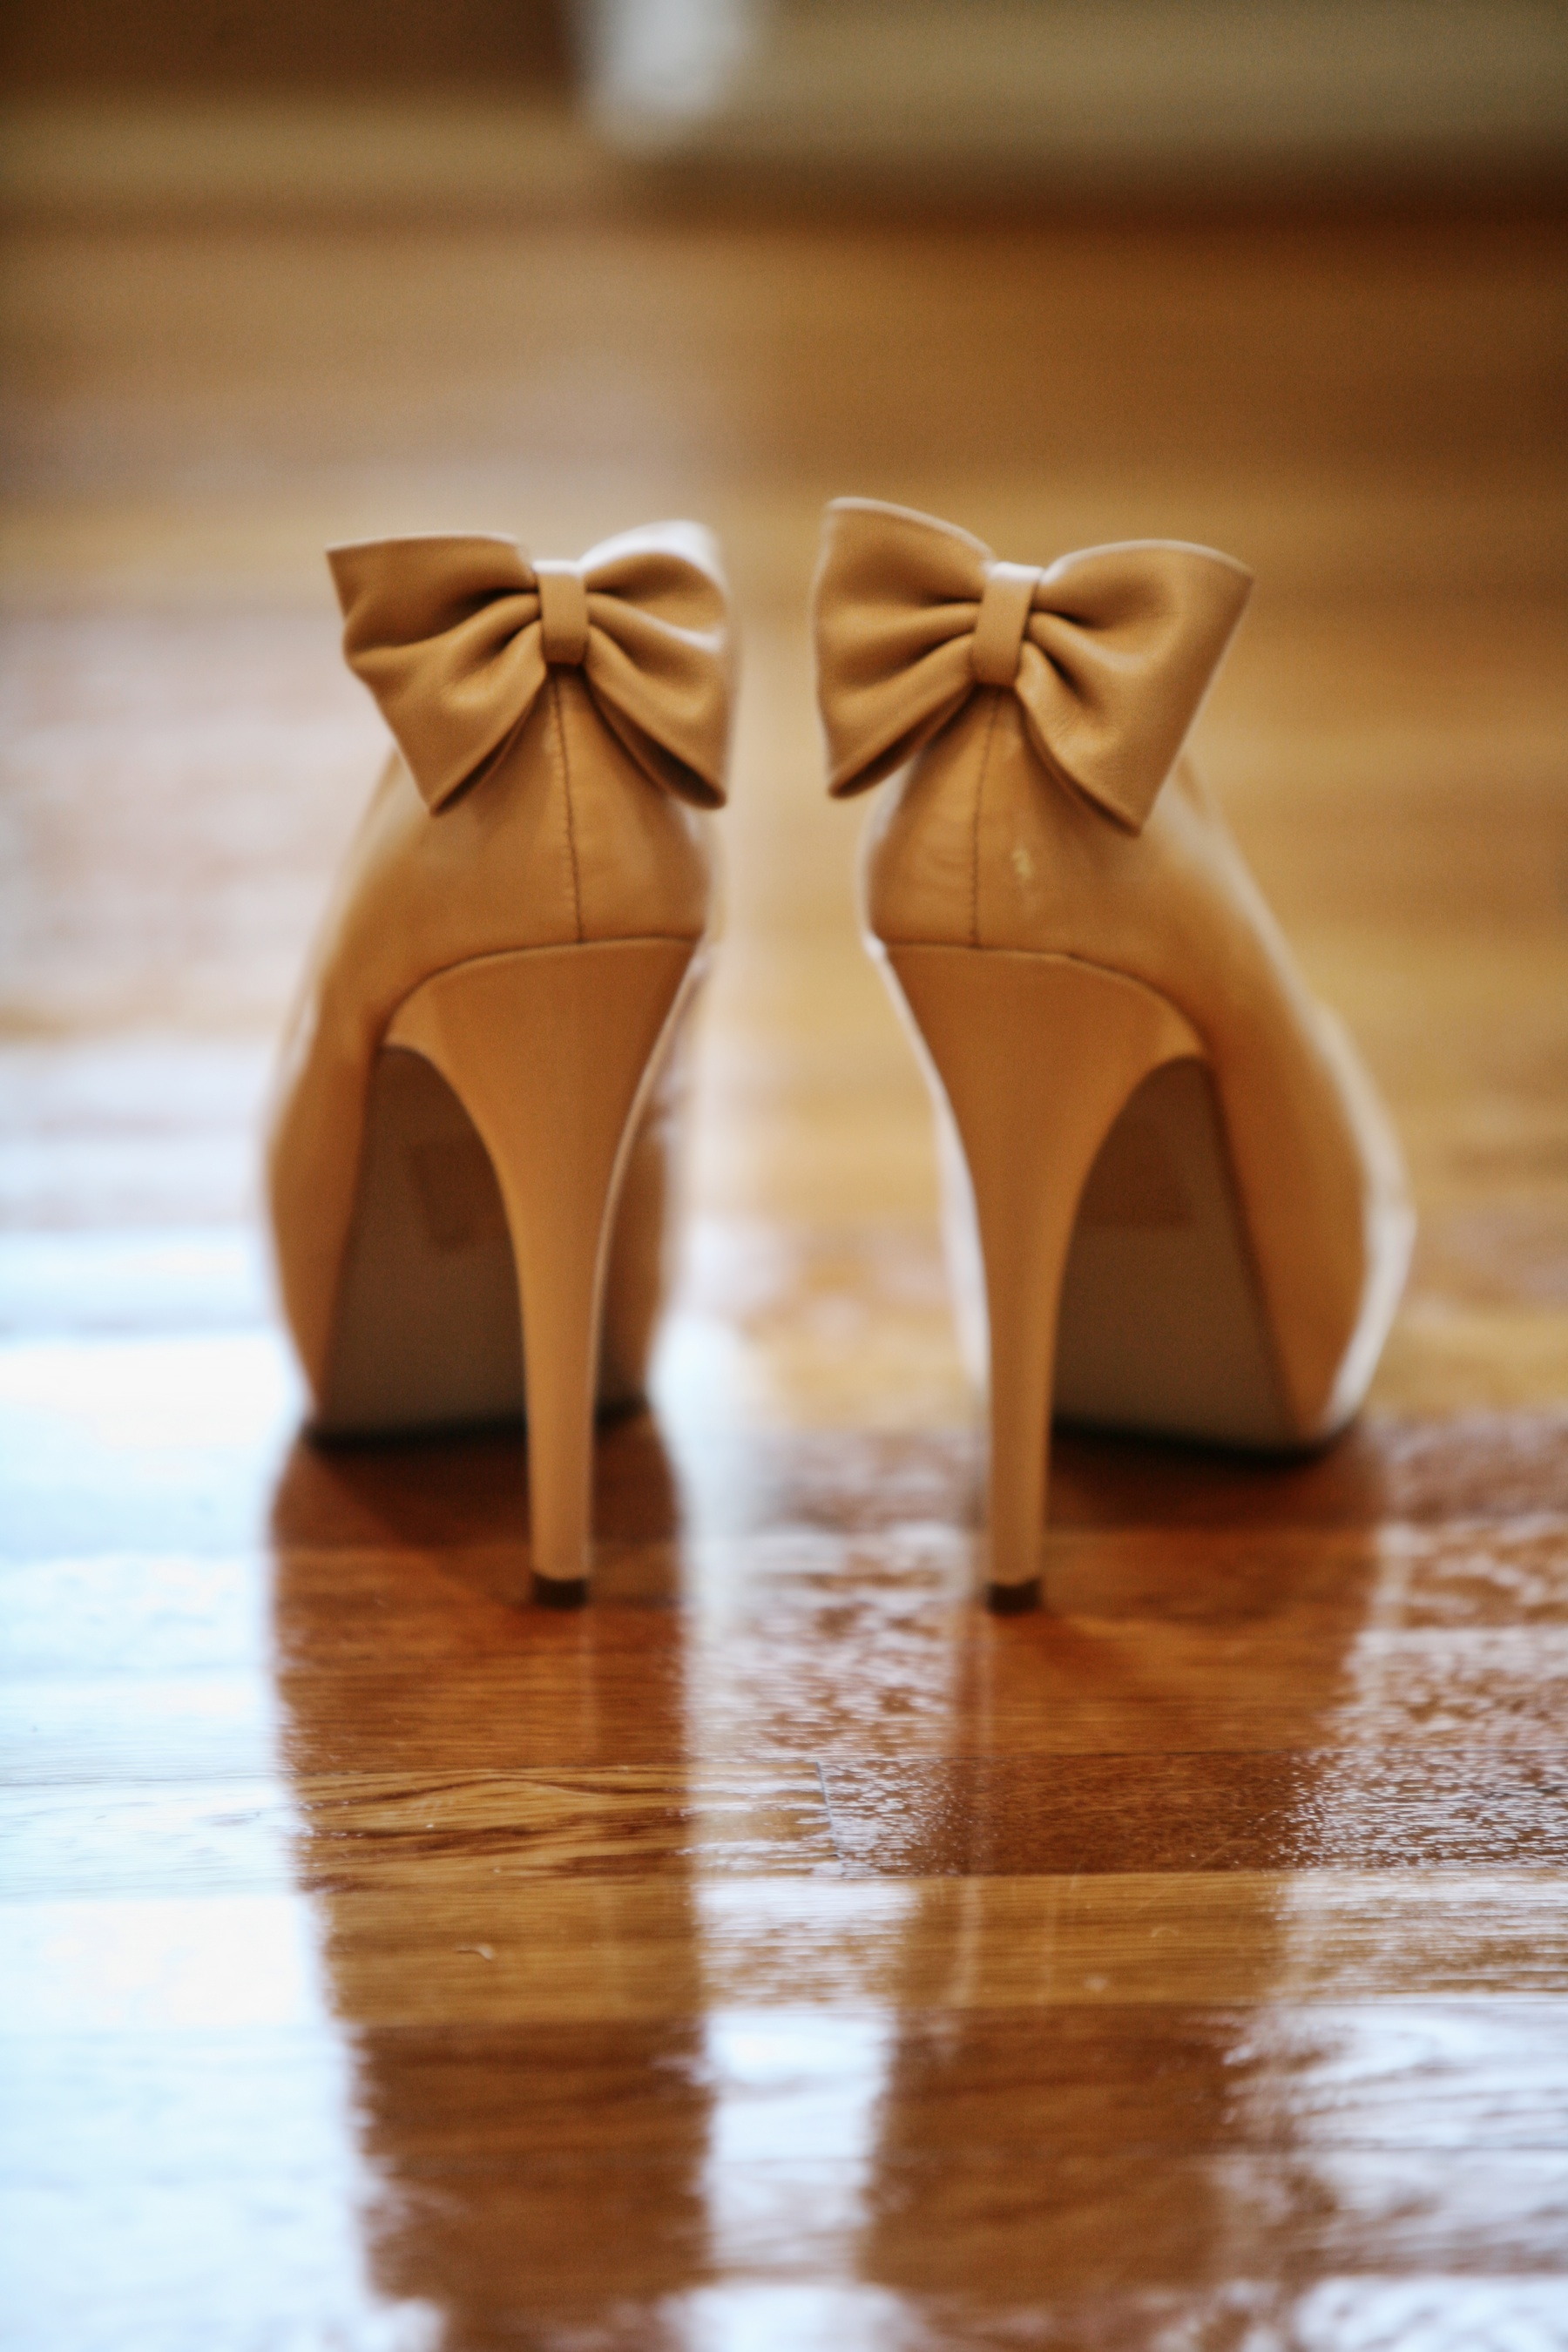 Personalized-real-wedding-planning-inspiration-for-brides-wedding-shoes-with-bows.original